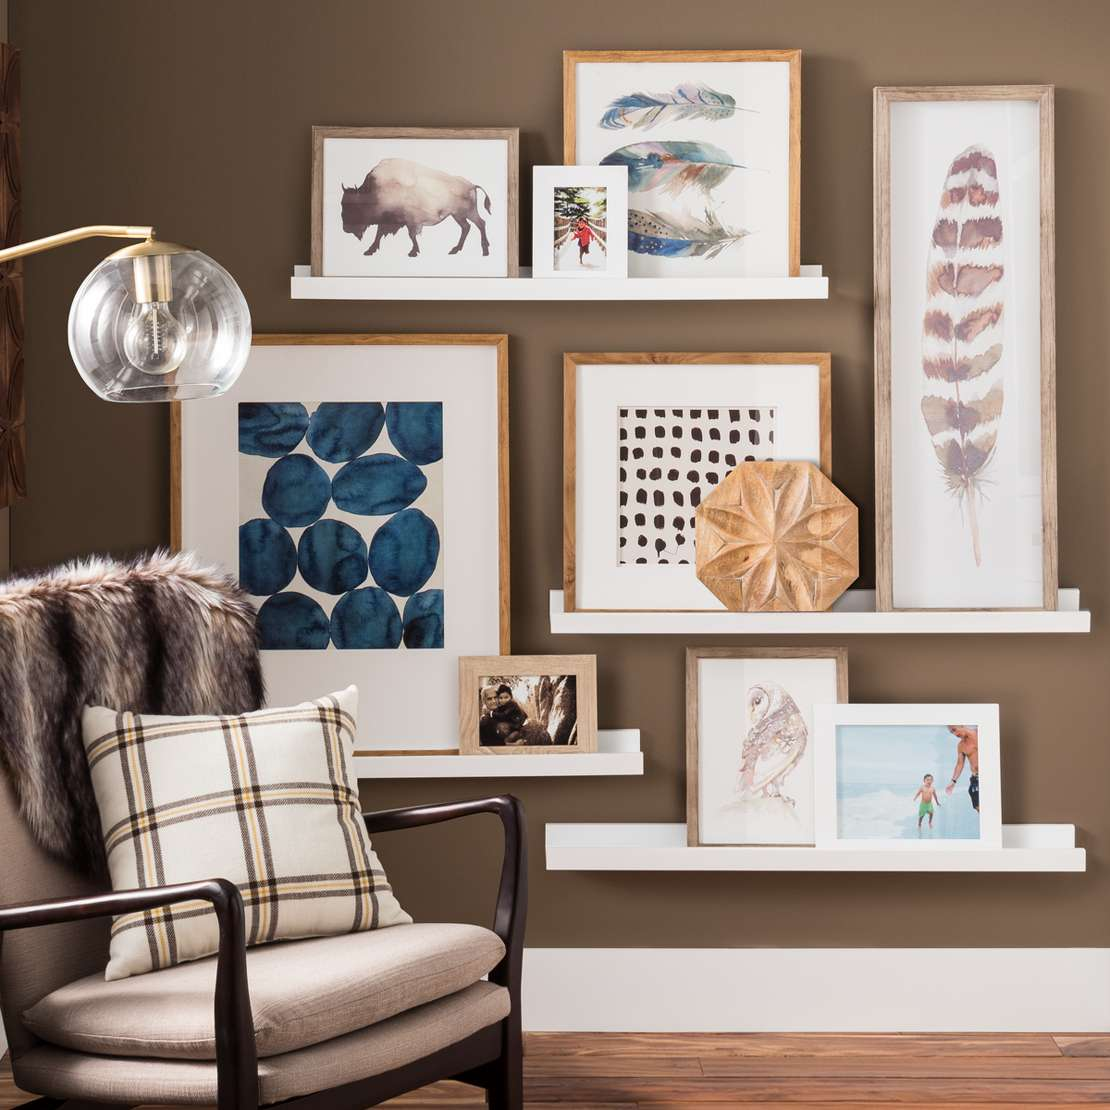 Stunning Gallery Wall Ideas To Create An Accent Wall In ... on Photo Room Decor  id=69167